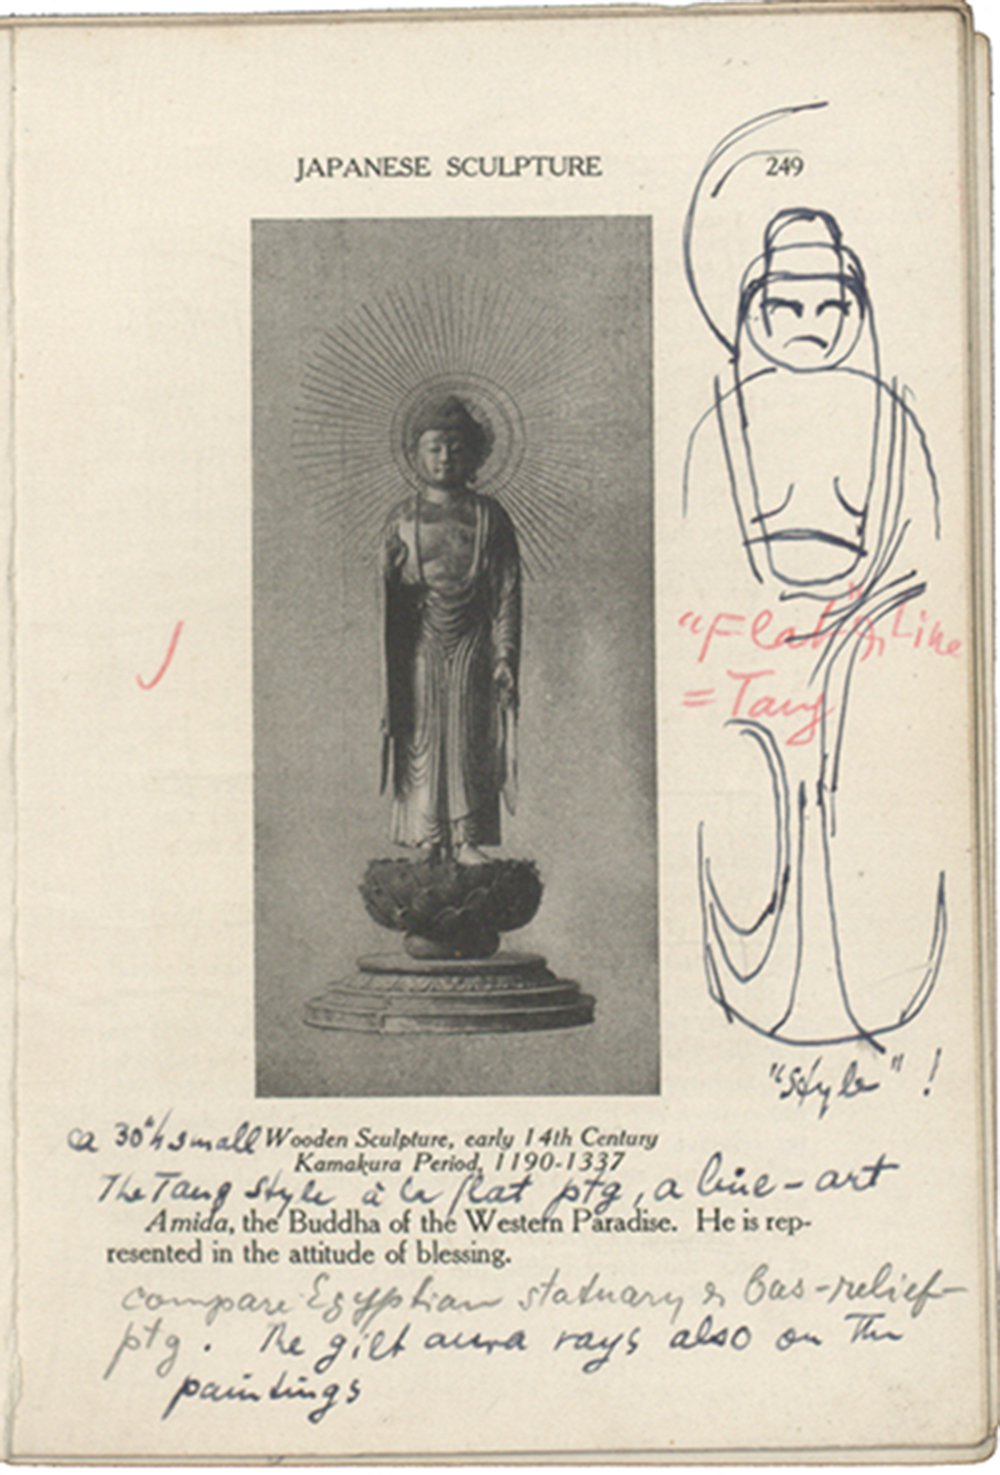 Printed book page with image of Amida buddha and ink sketch of buddha in the margin and notes in pencil, ink, and red wax pencil.